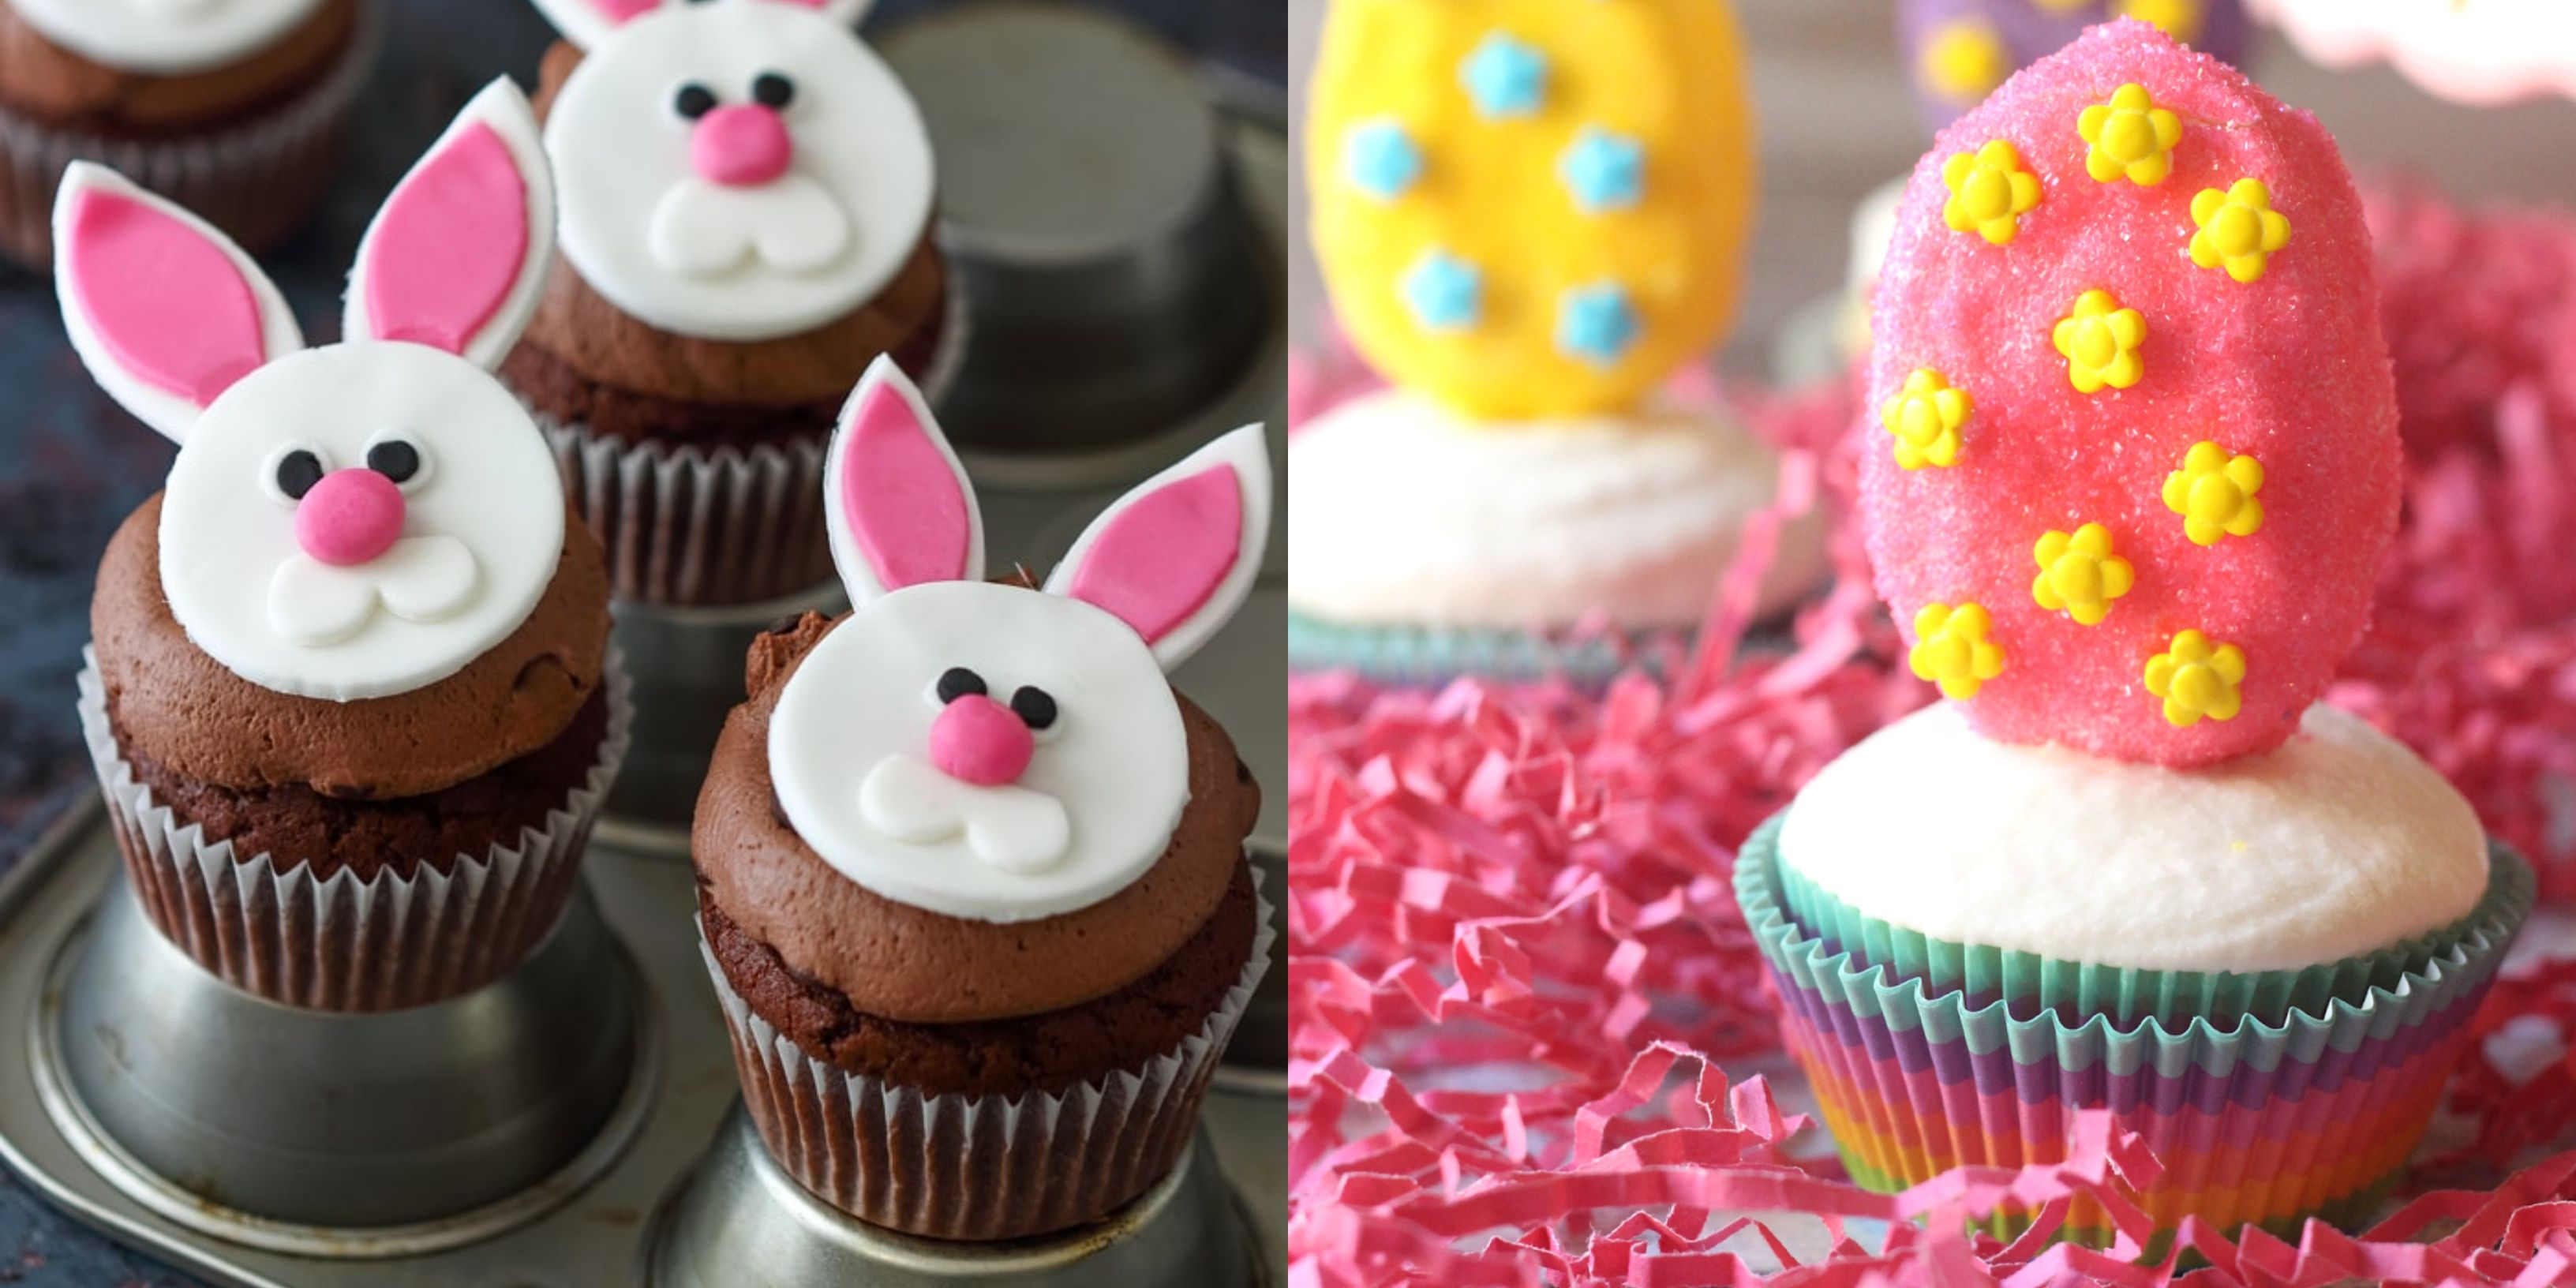 22 Cute Easter Cupcake Ideas Decorating Recipes For Easter Cupcakes